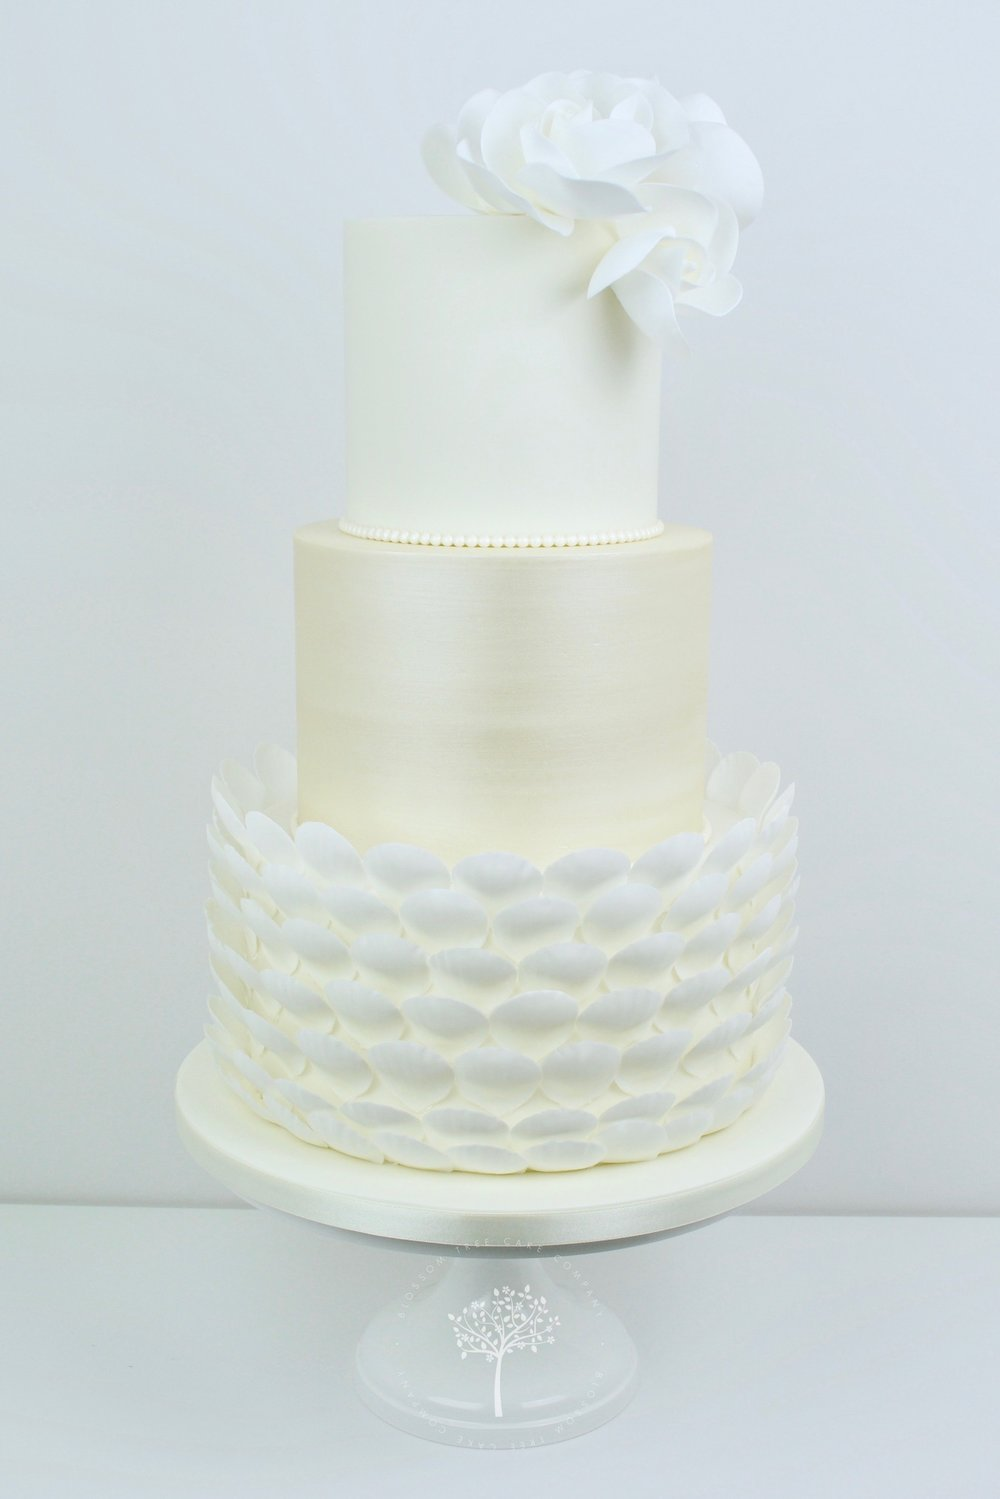 White Roses with Pearls wedding cake by Blossom Tree Cake Company Harrogate North Yorkshire.jpg